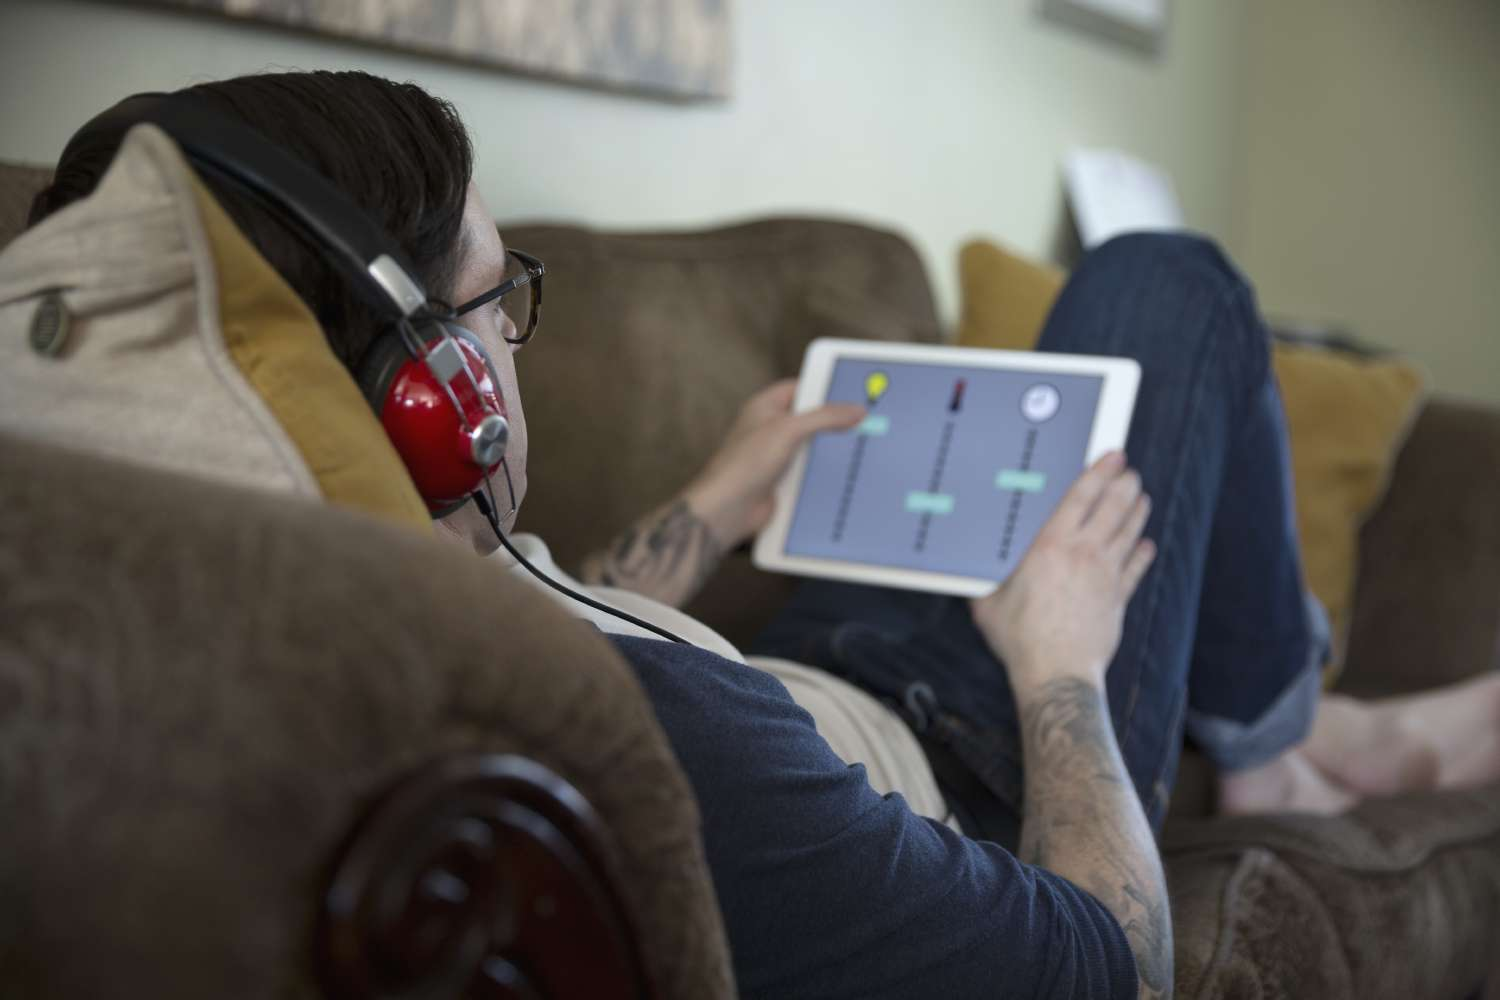 Man enjoys smartphone music thanks to data preparation for streaming data